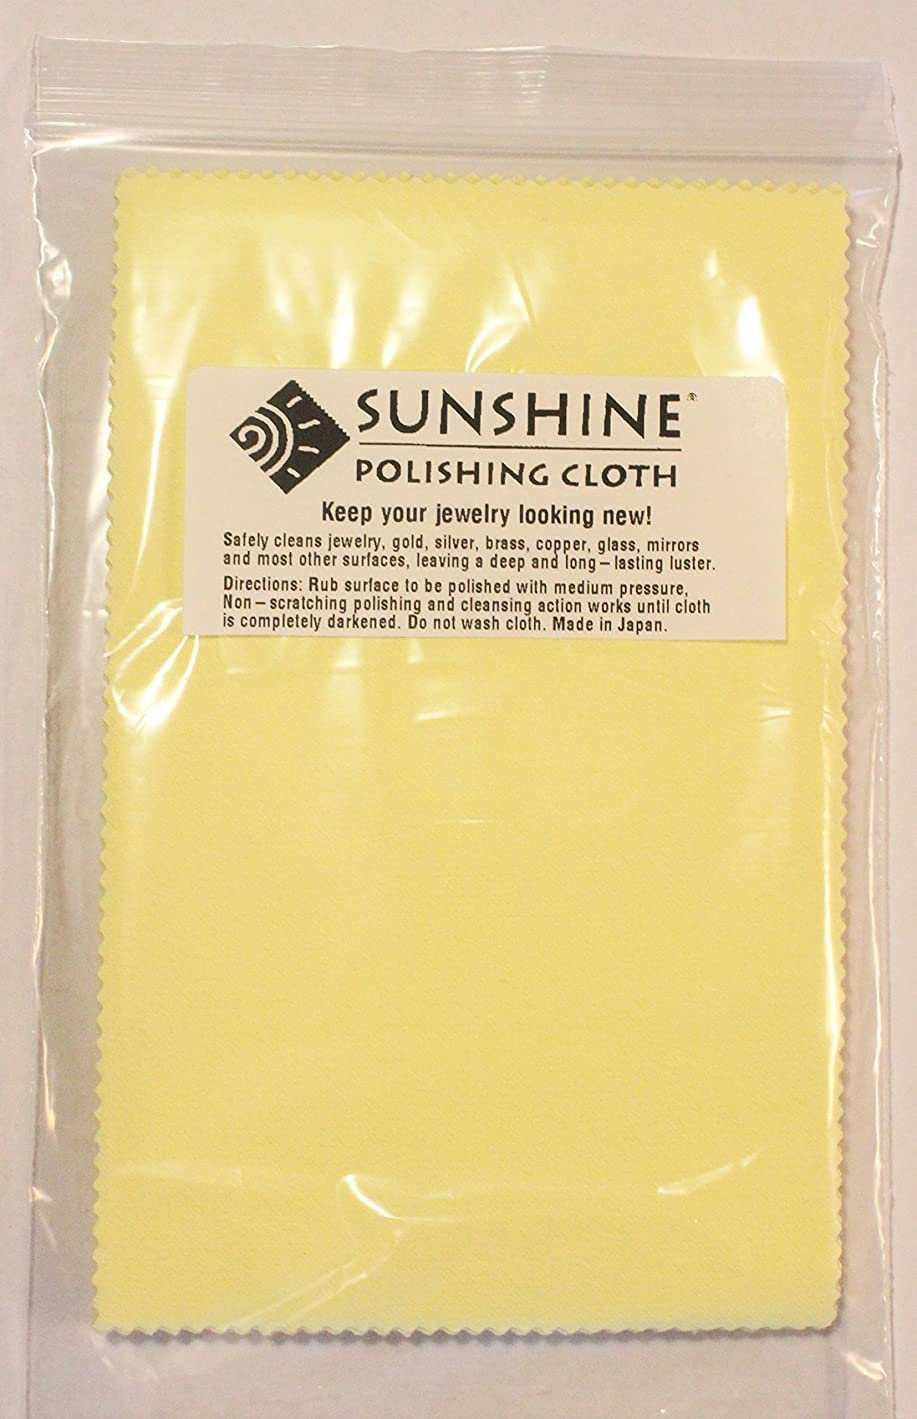 10 Sunshine Silver Polishing Cloth for Sterling Silver, Gold, Brass and Copper Jewelry Polishing Cloth q78956910022744